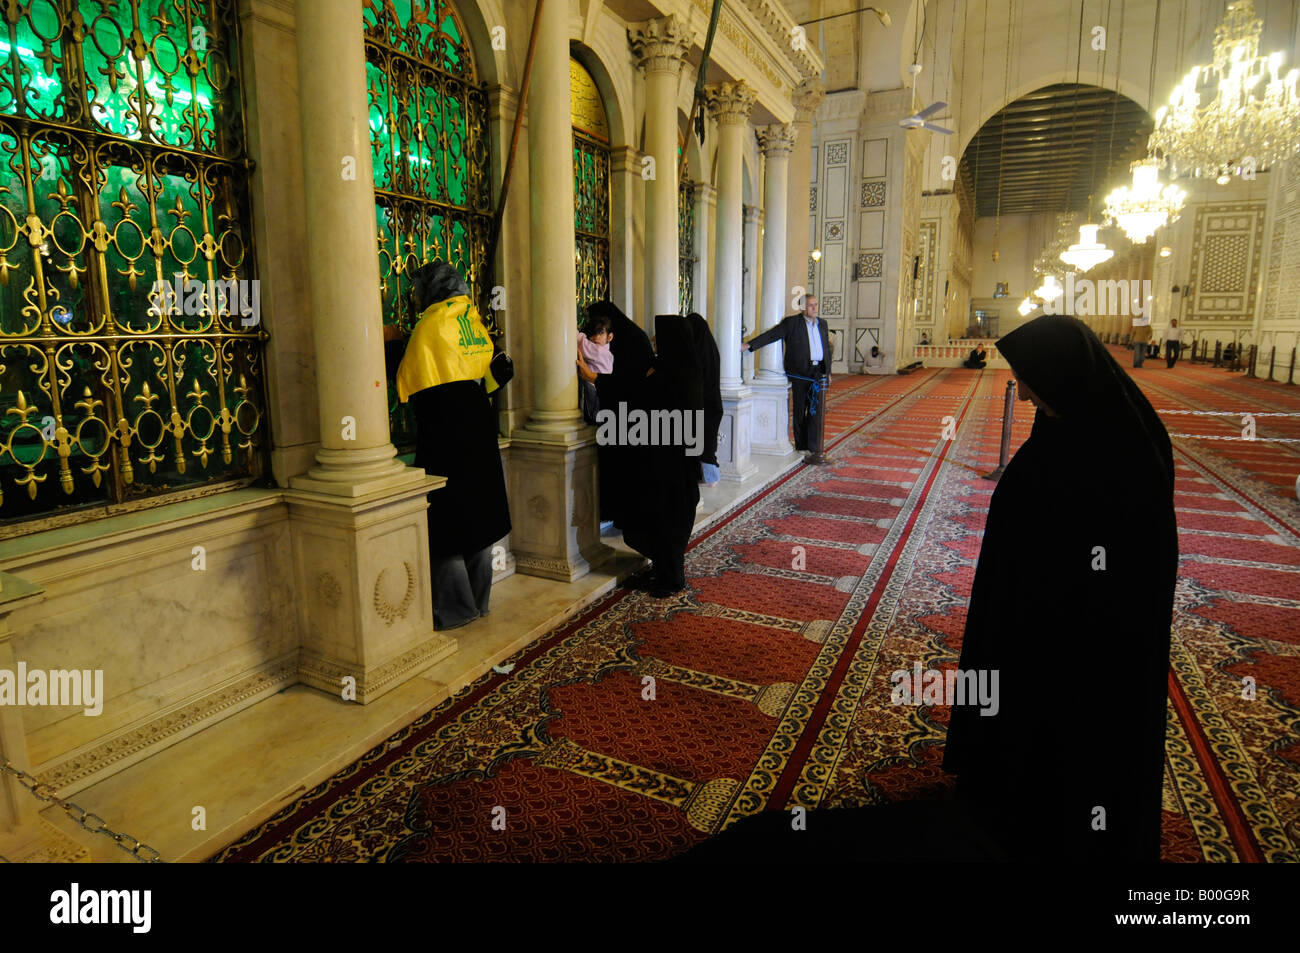 Women, including one with a Hezbollah flag, praying at the shrine of John the Baptist in the Umayyad mosque in Damascus, - Stock Image